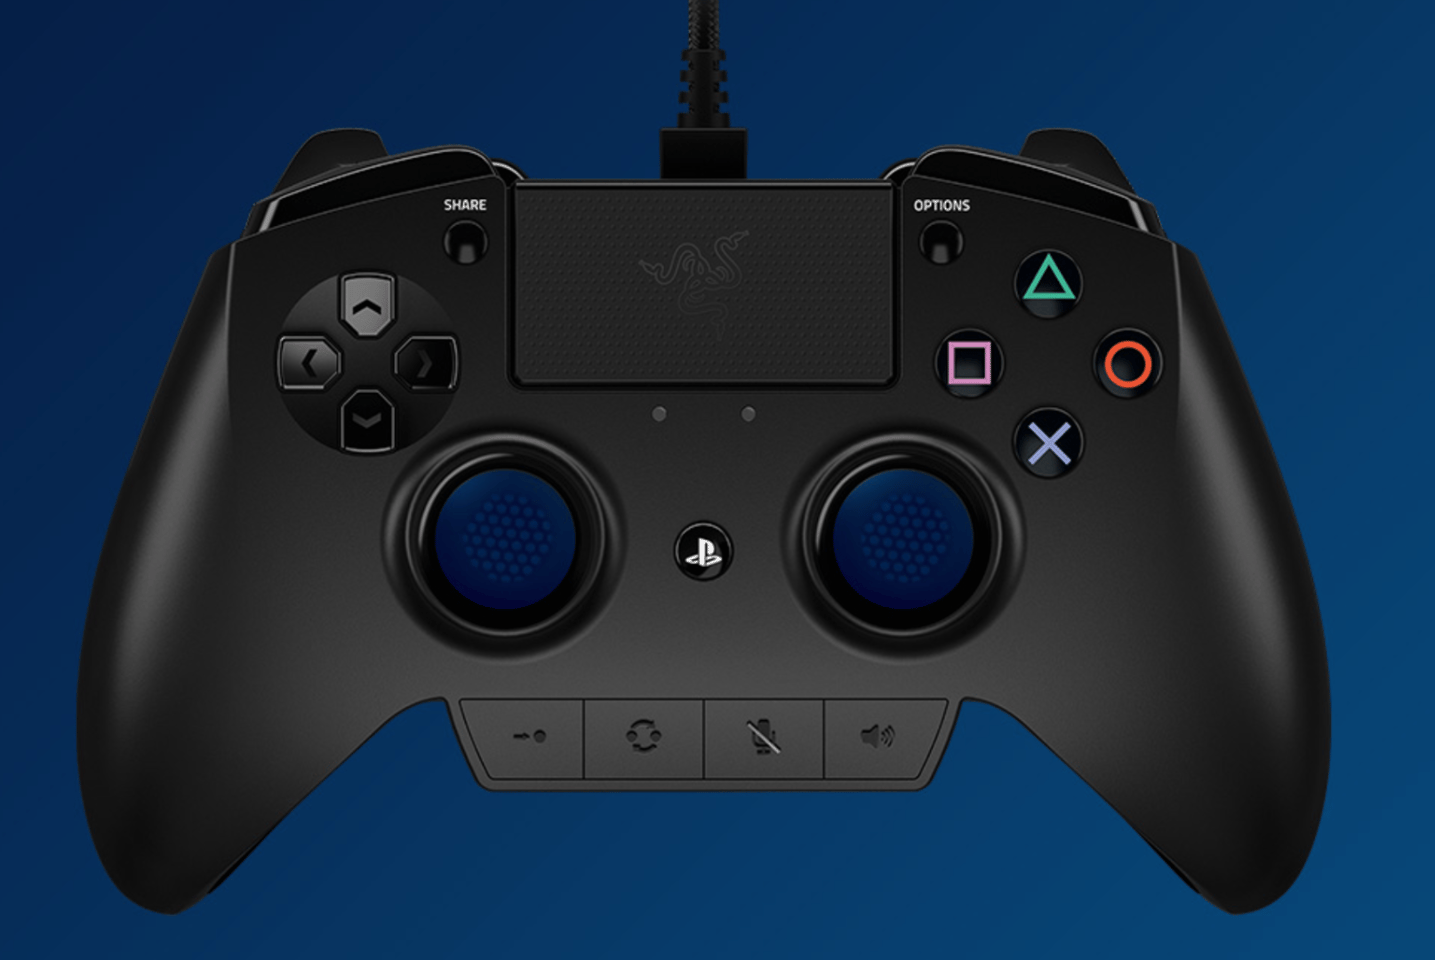 Razer's Raiju controller for PlayStation 4